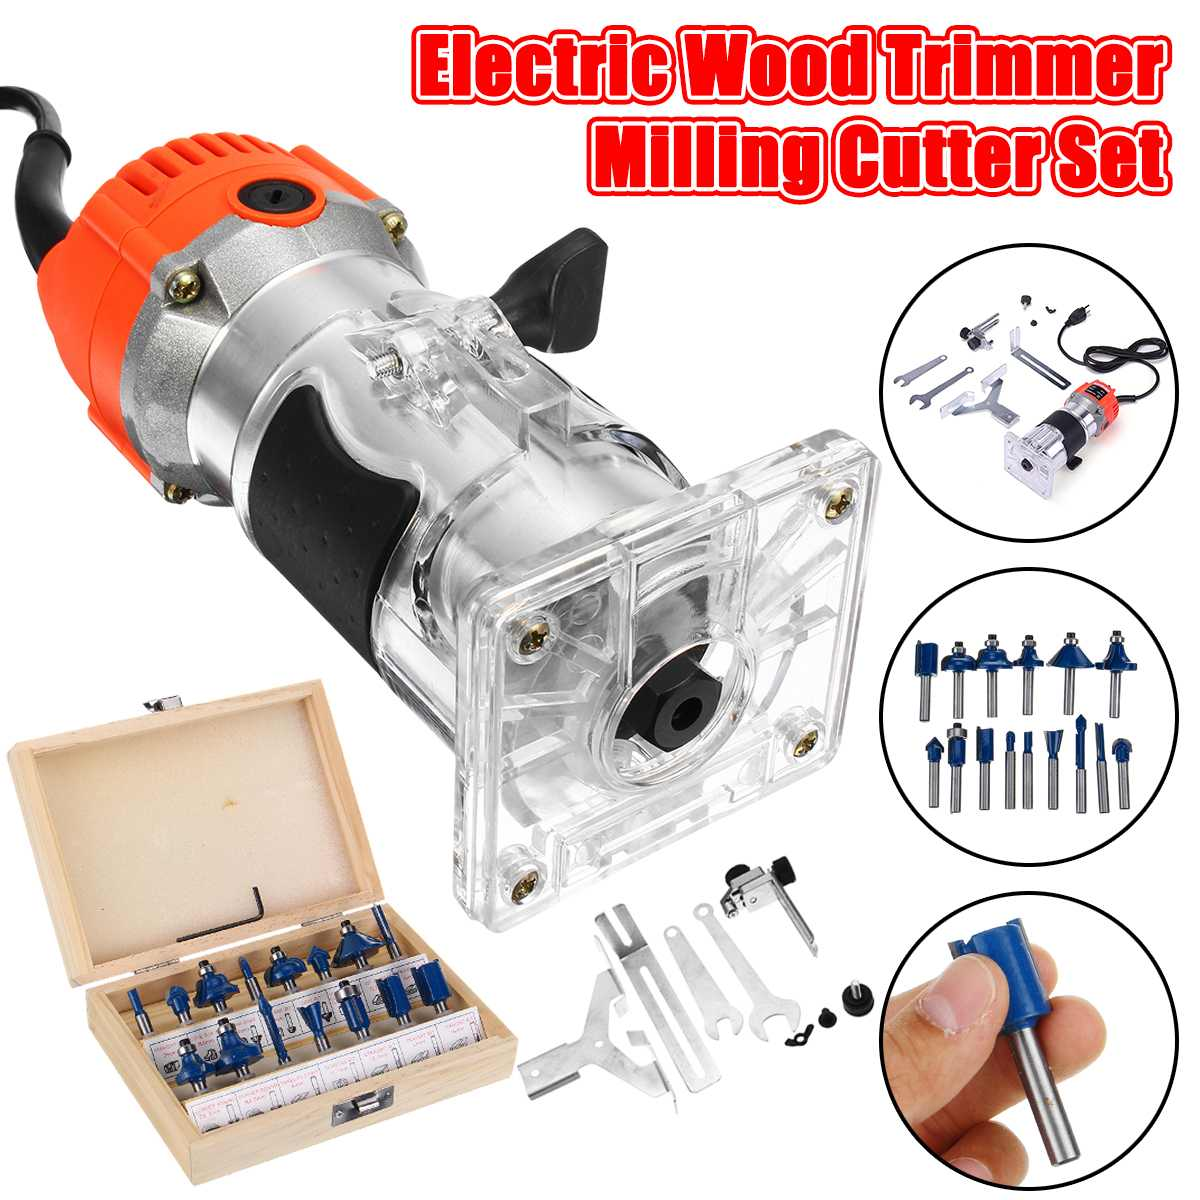 1200W 220V Electric Wood Trimmer Laminator 35000r/min Router Joiners Tool Set Aluminum+15pcs 6.35mm Collet Diameter Wood Router|Electric Trimmers|   - AliExpress